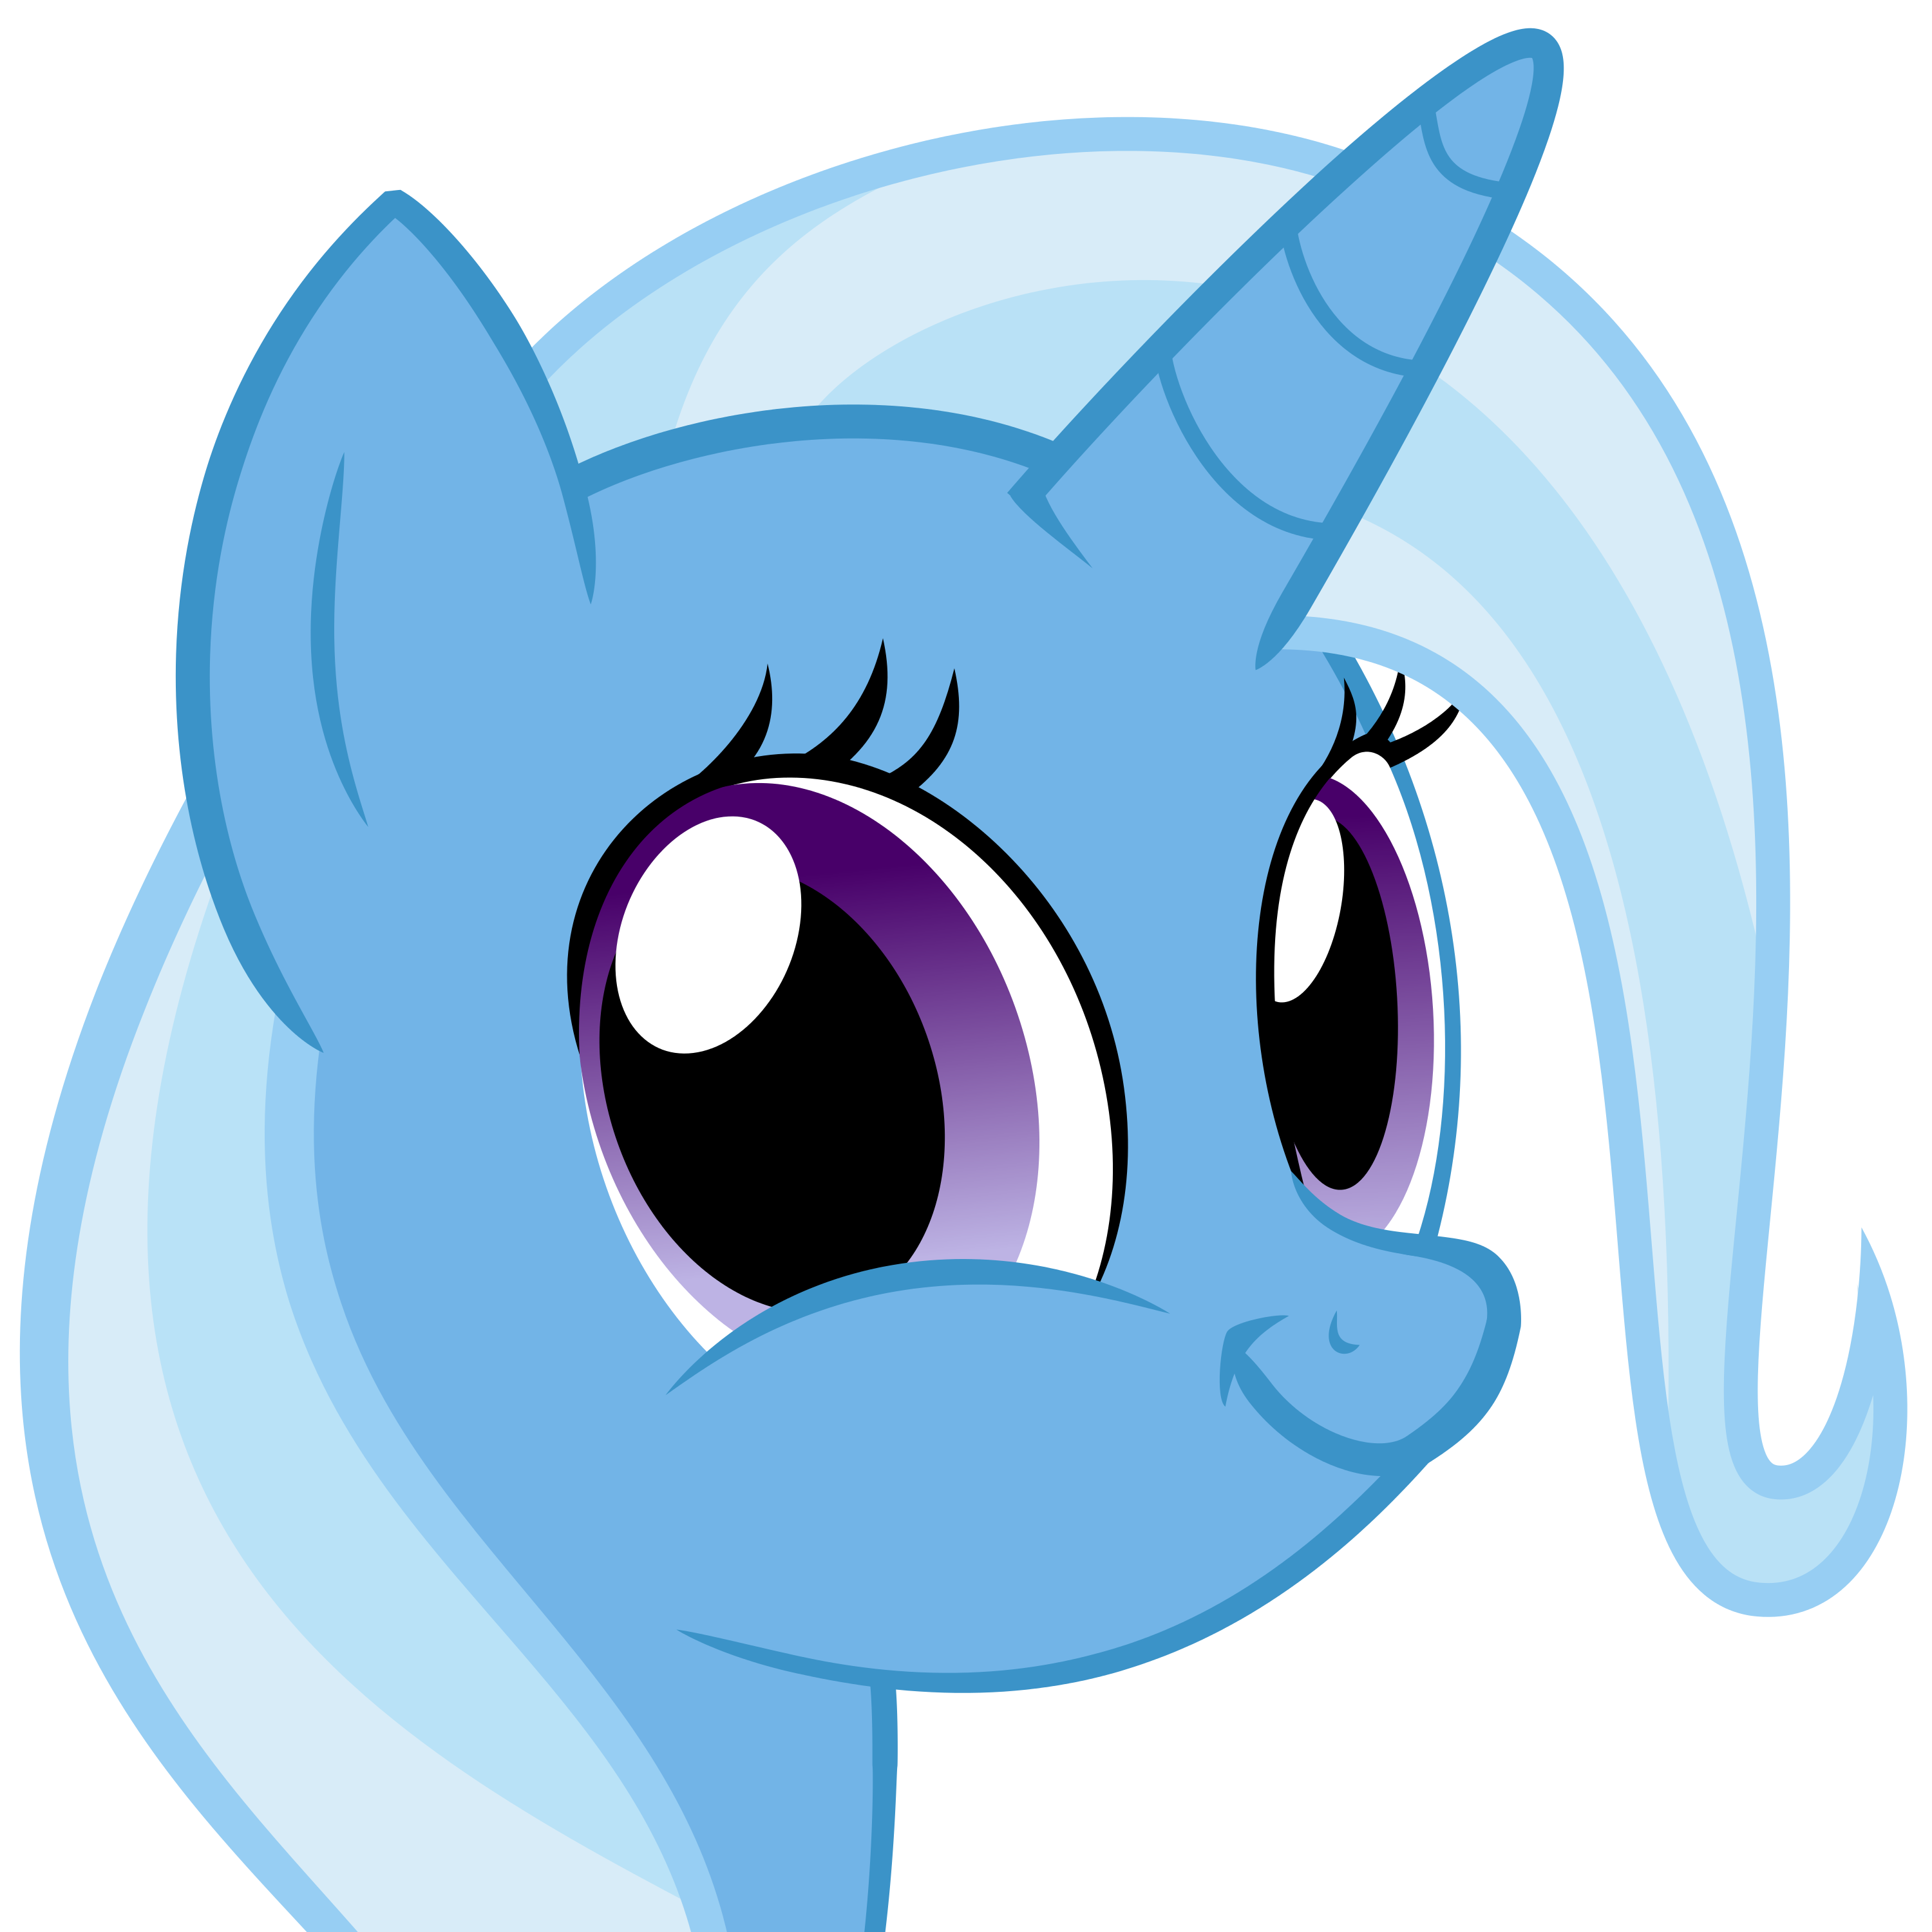 Trixie vector face. Artist the smiling